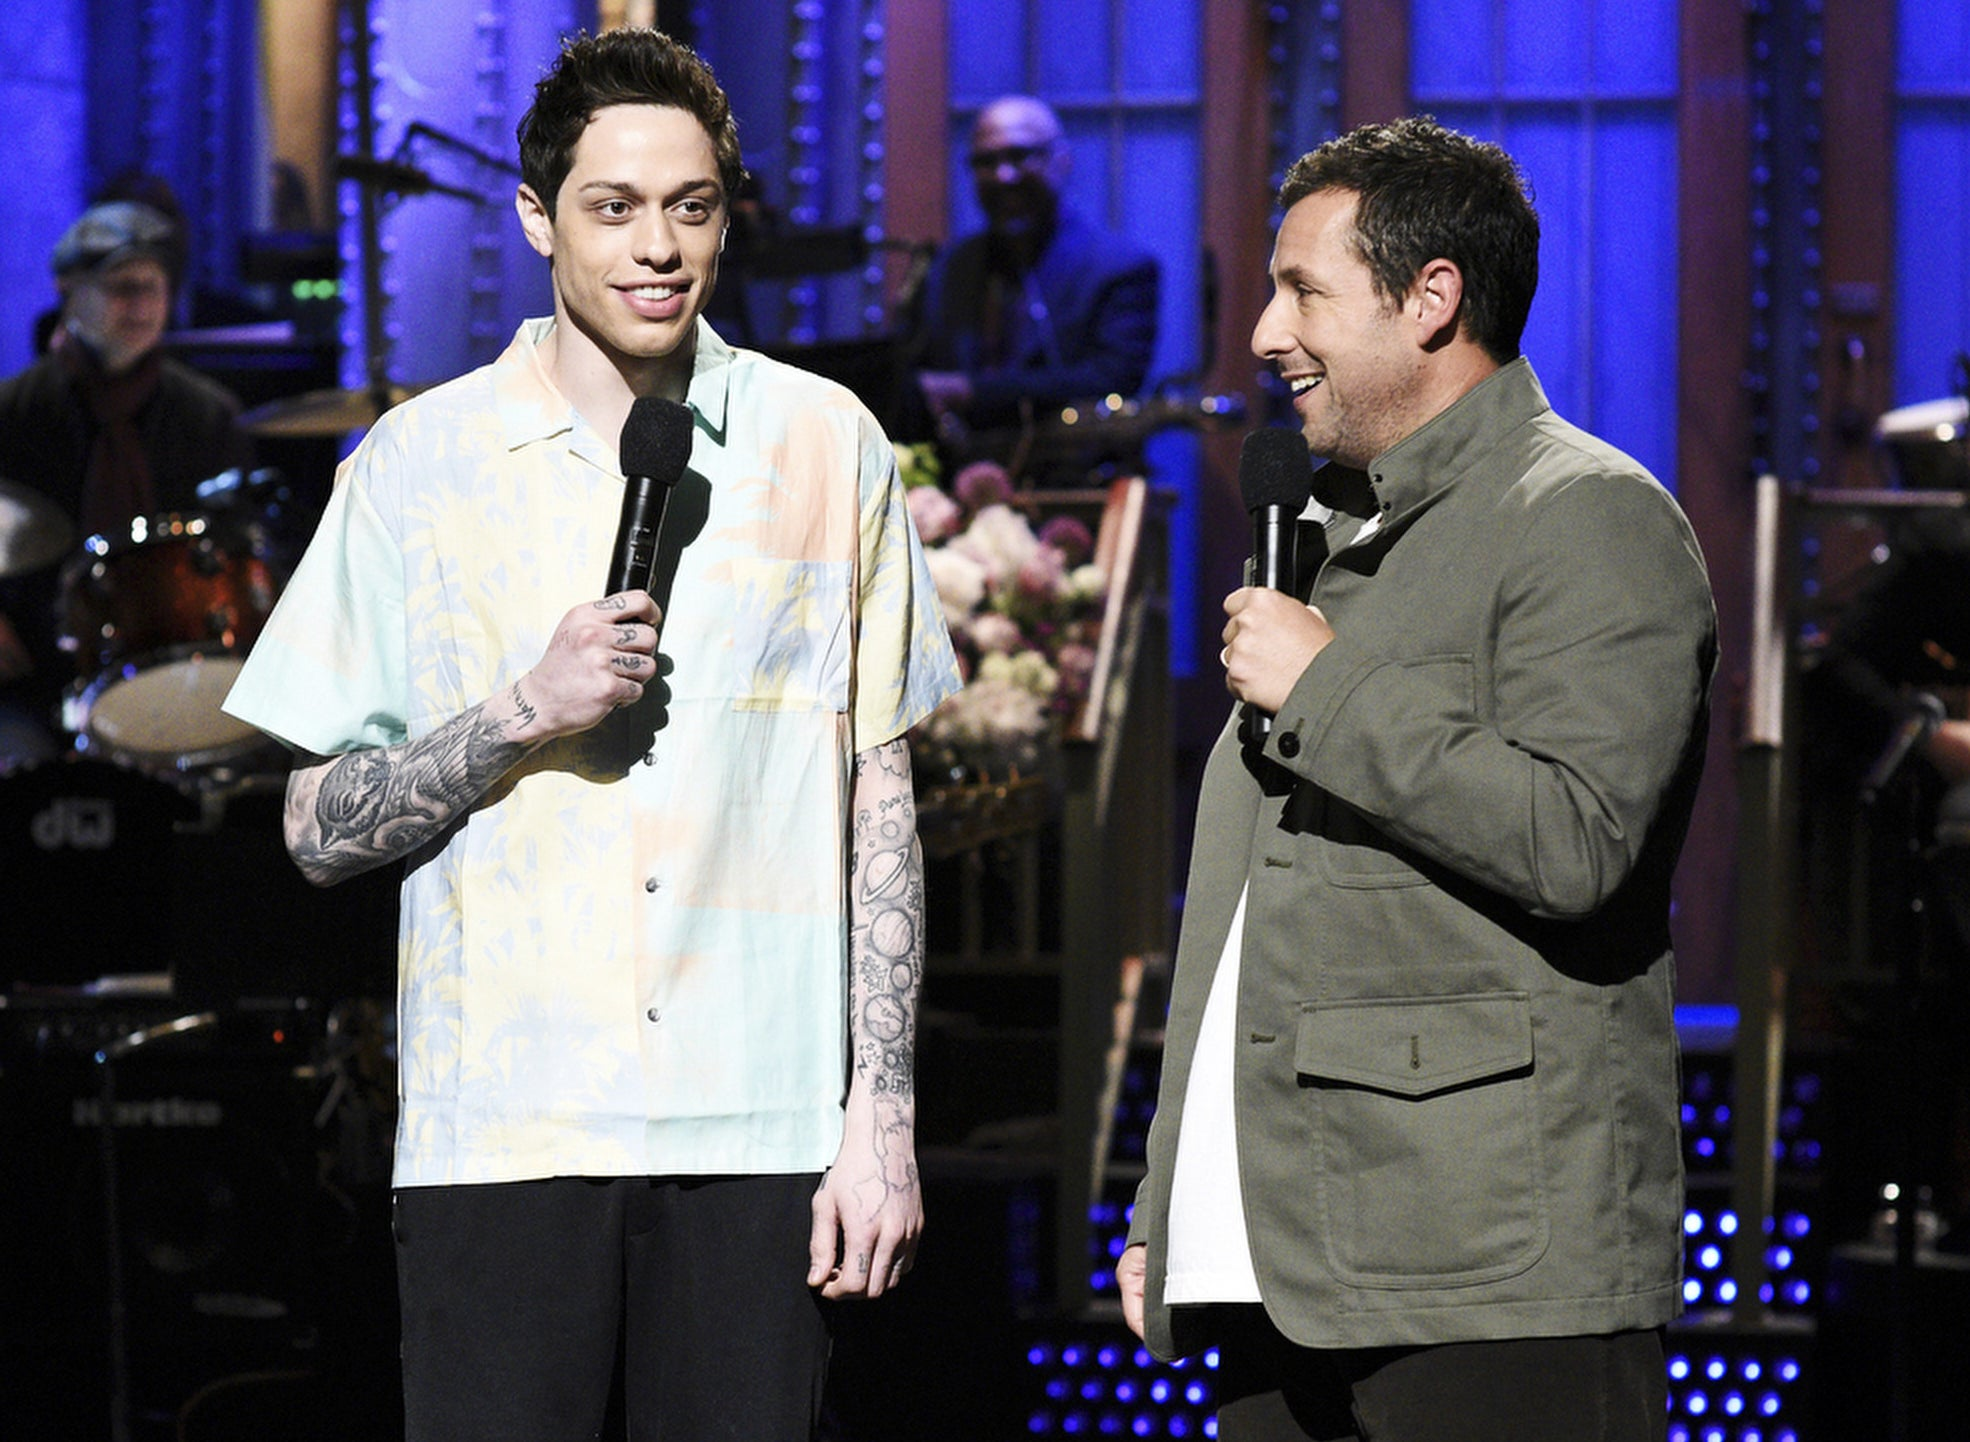 Adam chats with Pete on the Saturday Night Live stage